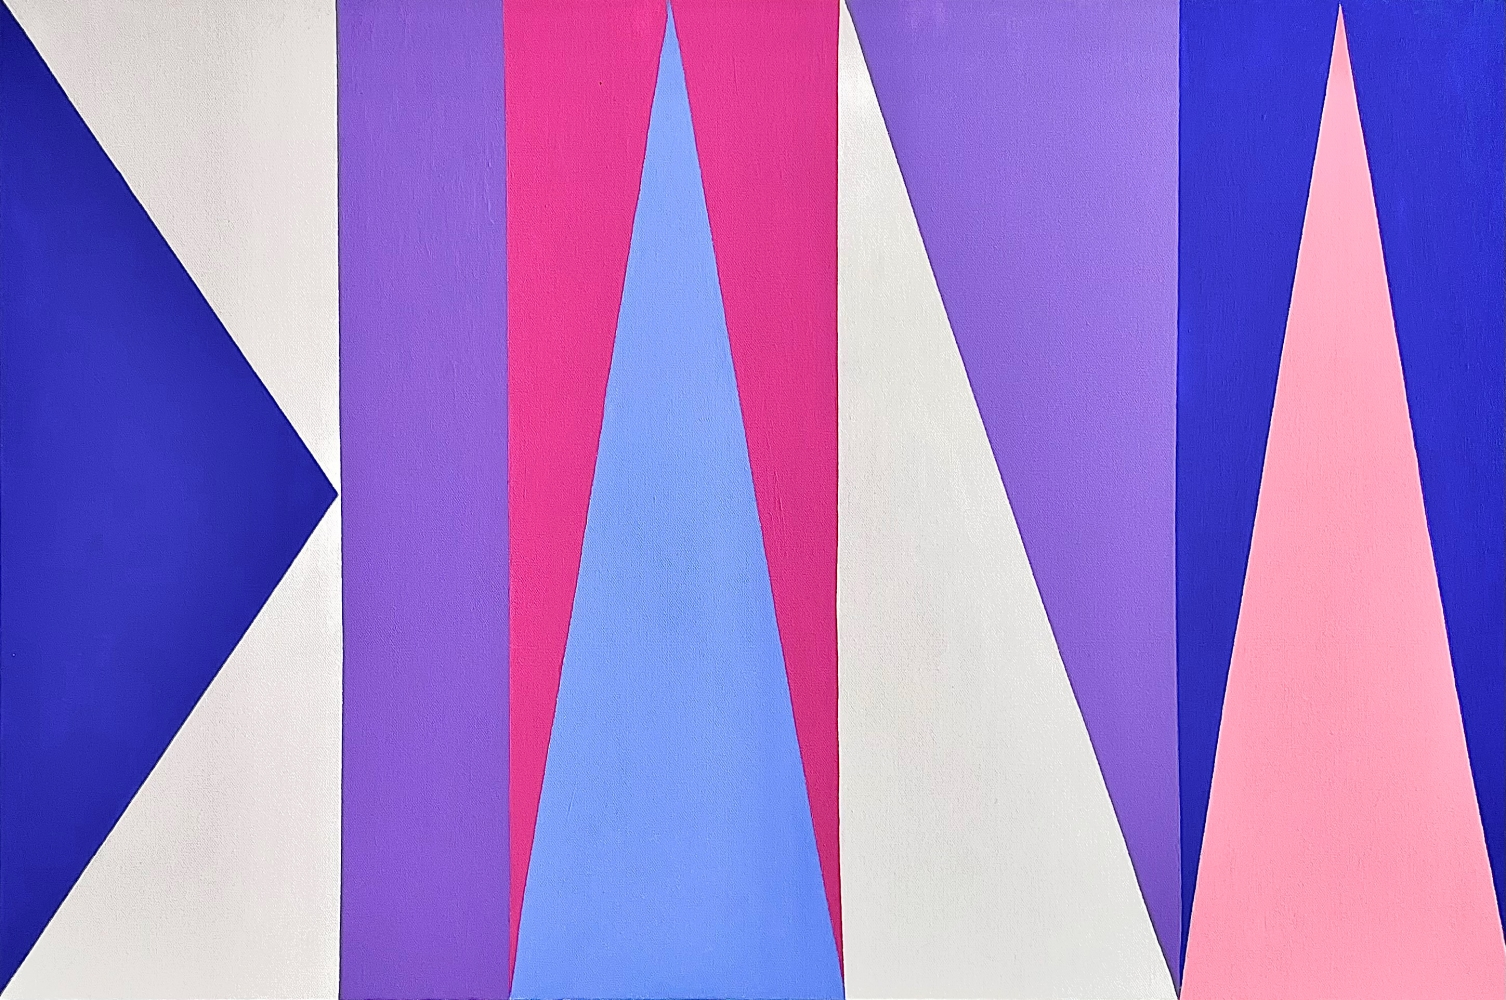 Ron Burkardt, DIANA, 2018, Acrylic painting on Canvas, 24 x 36 inches, contemporary art for sale